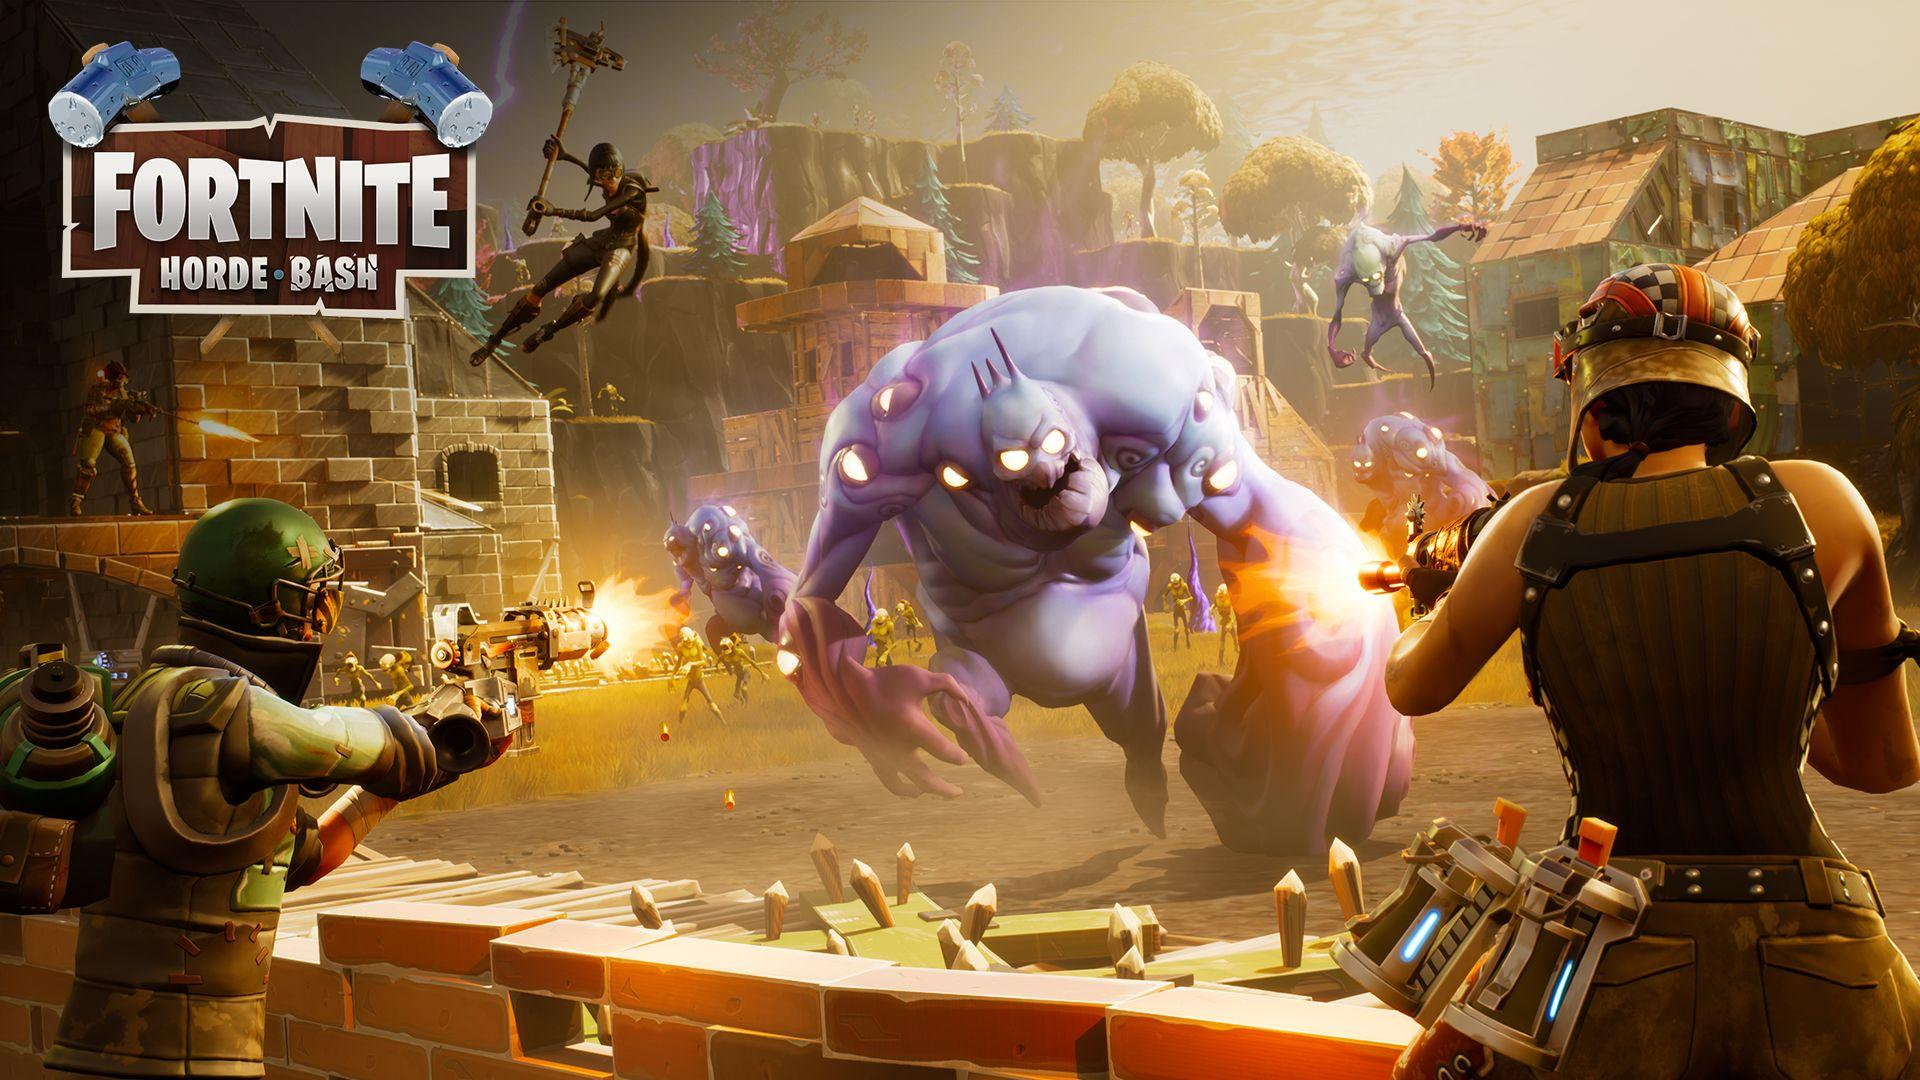 Fortnite Update Adds Horde Mode, Fixes for Battle Royale